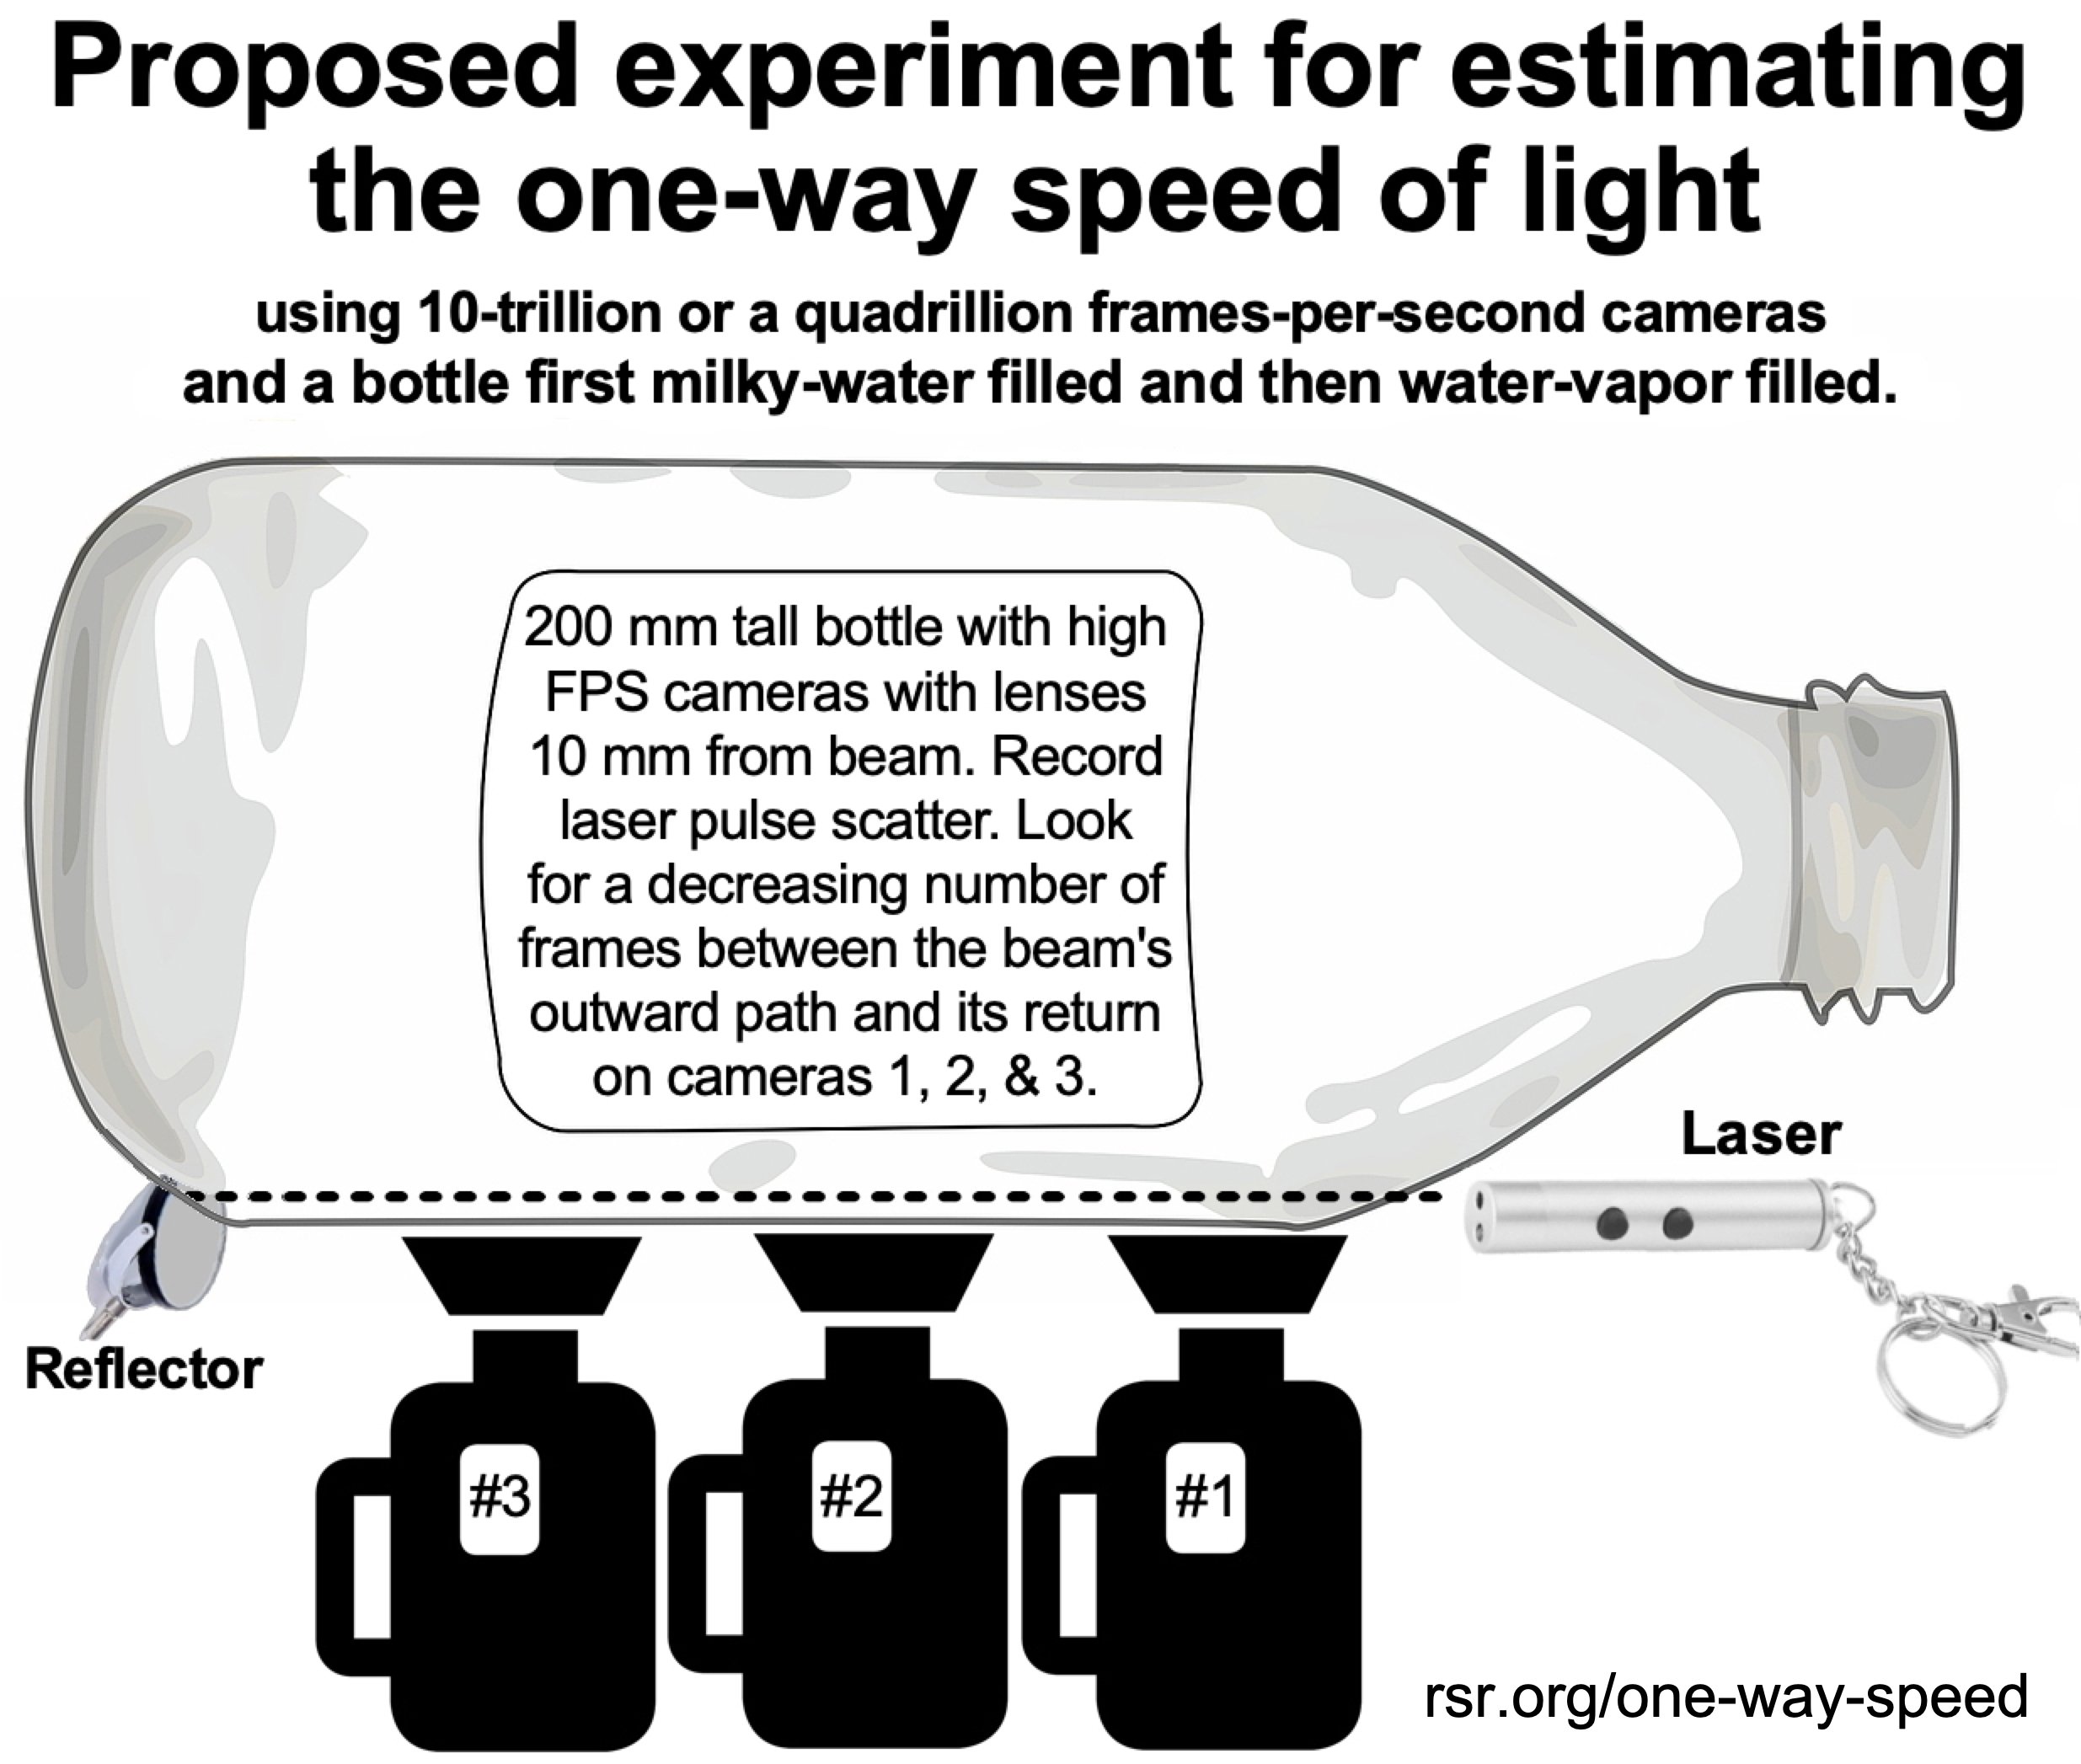 Proposed experiment setup for estimating the one-way speed of light